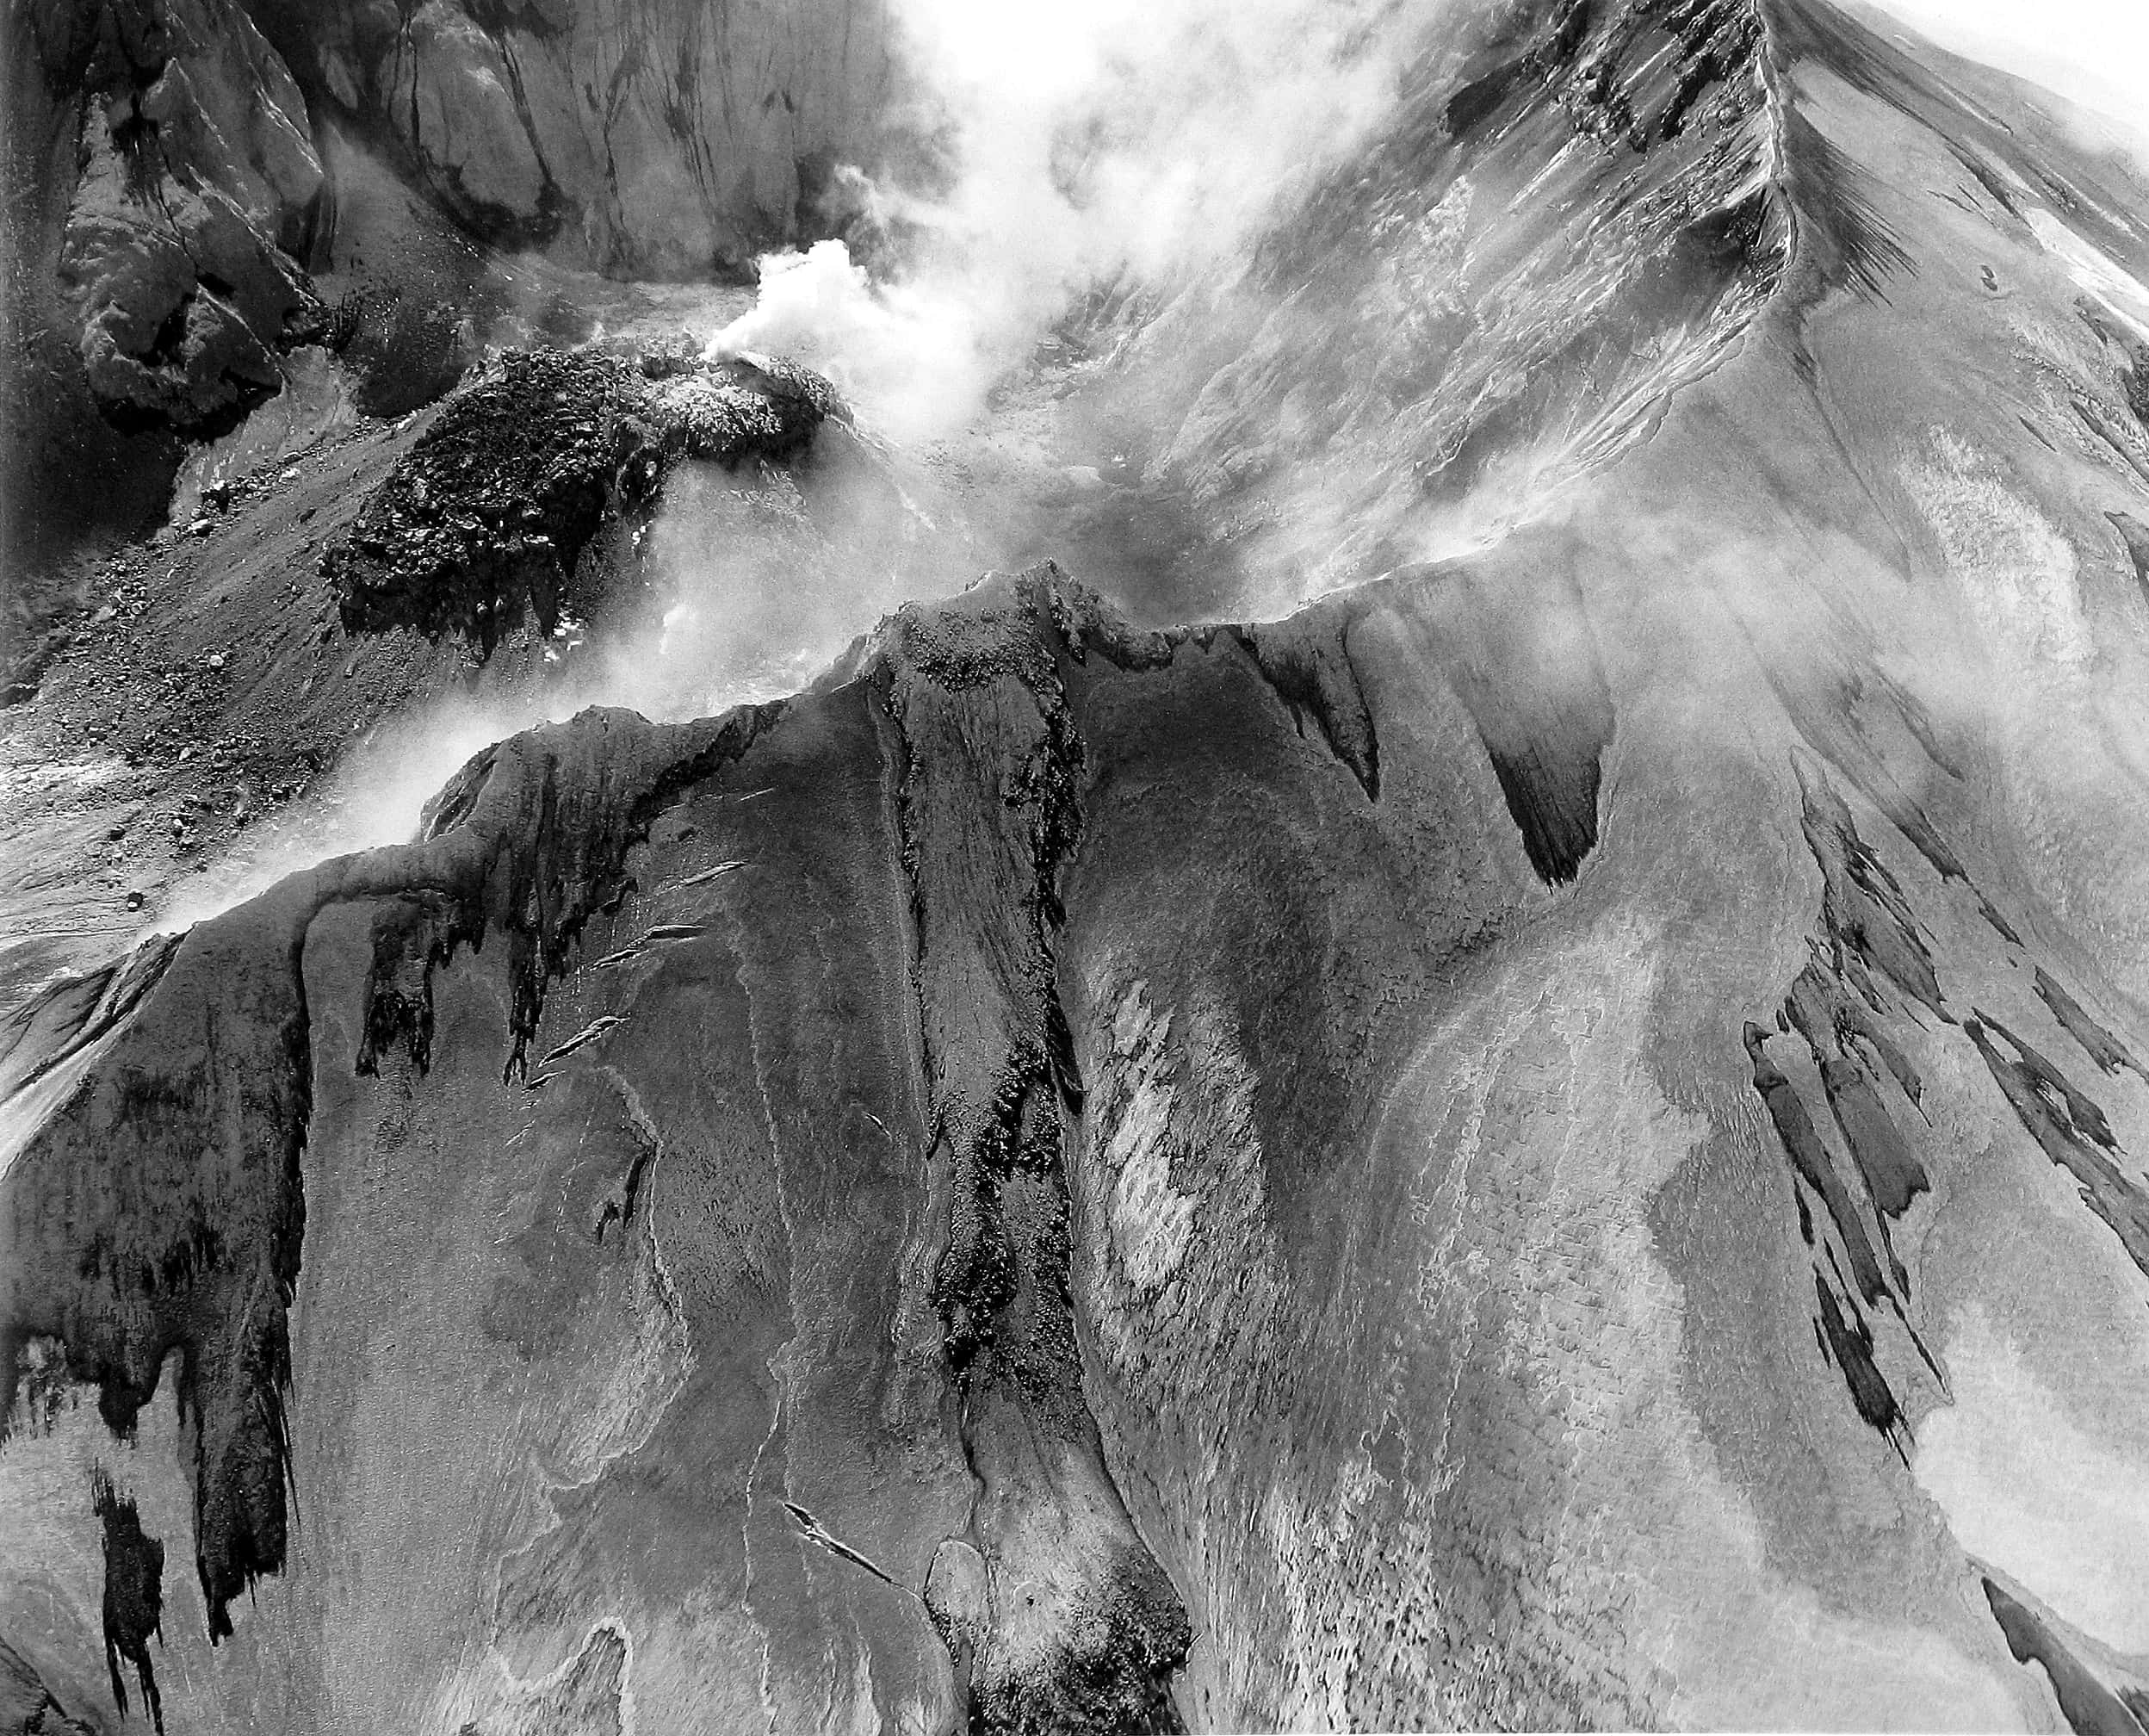 Aerial View of Mt. St. Helens, Crater and Lava Dome, 1982